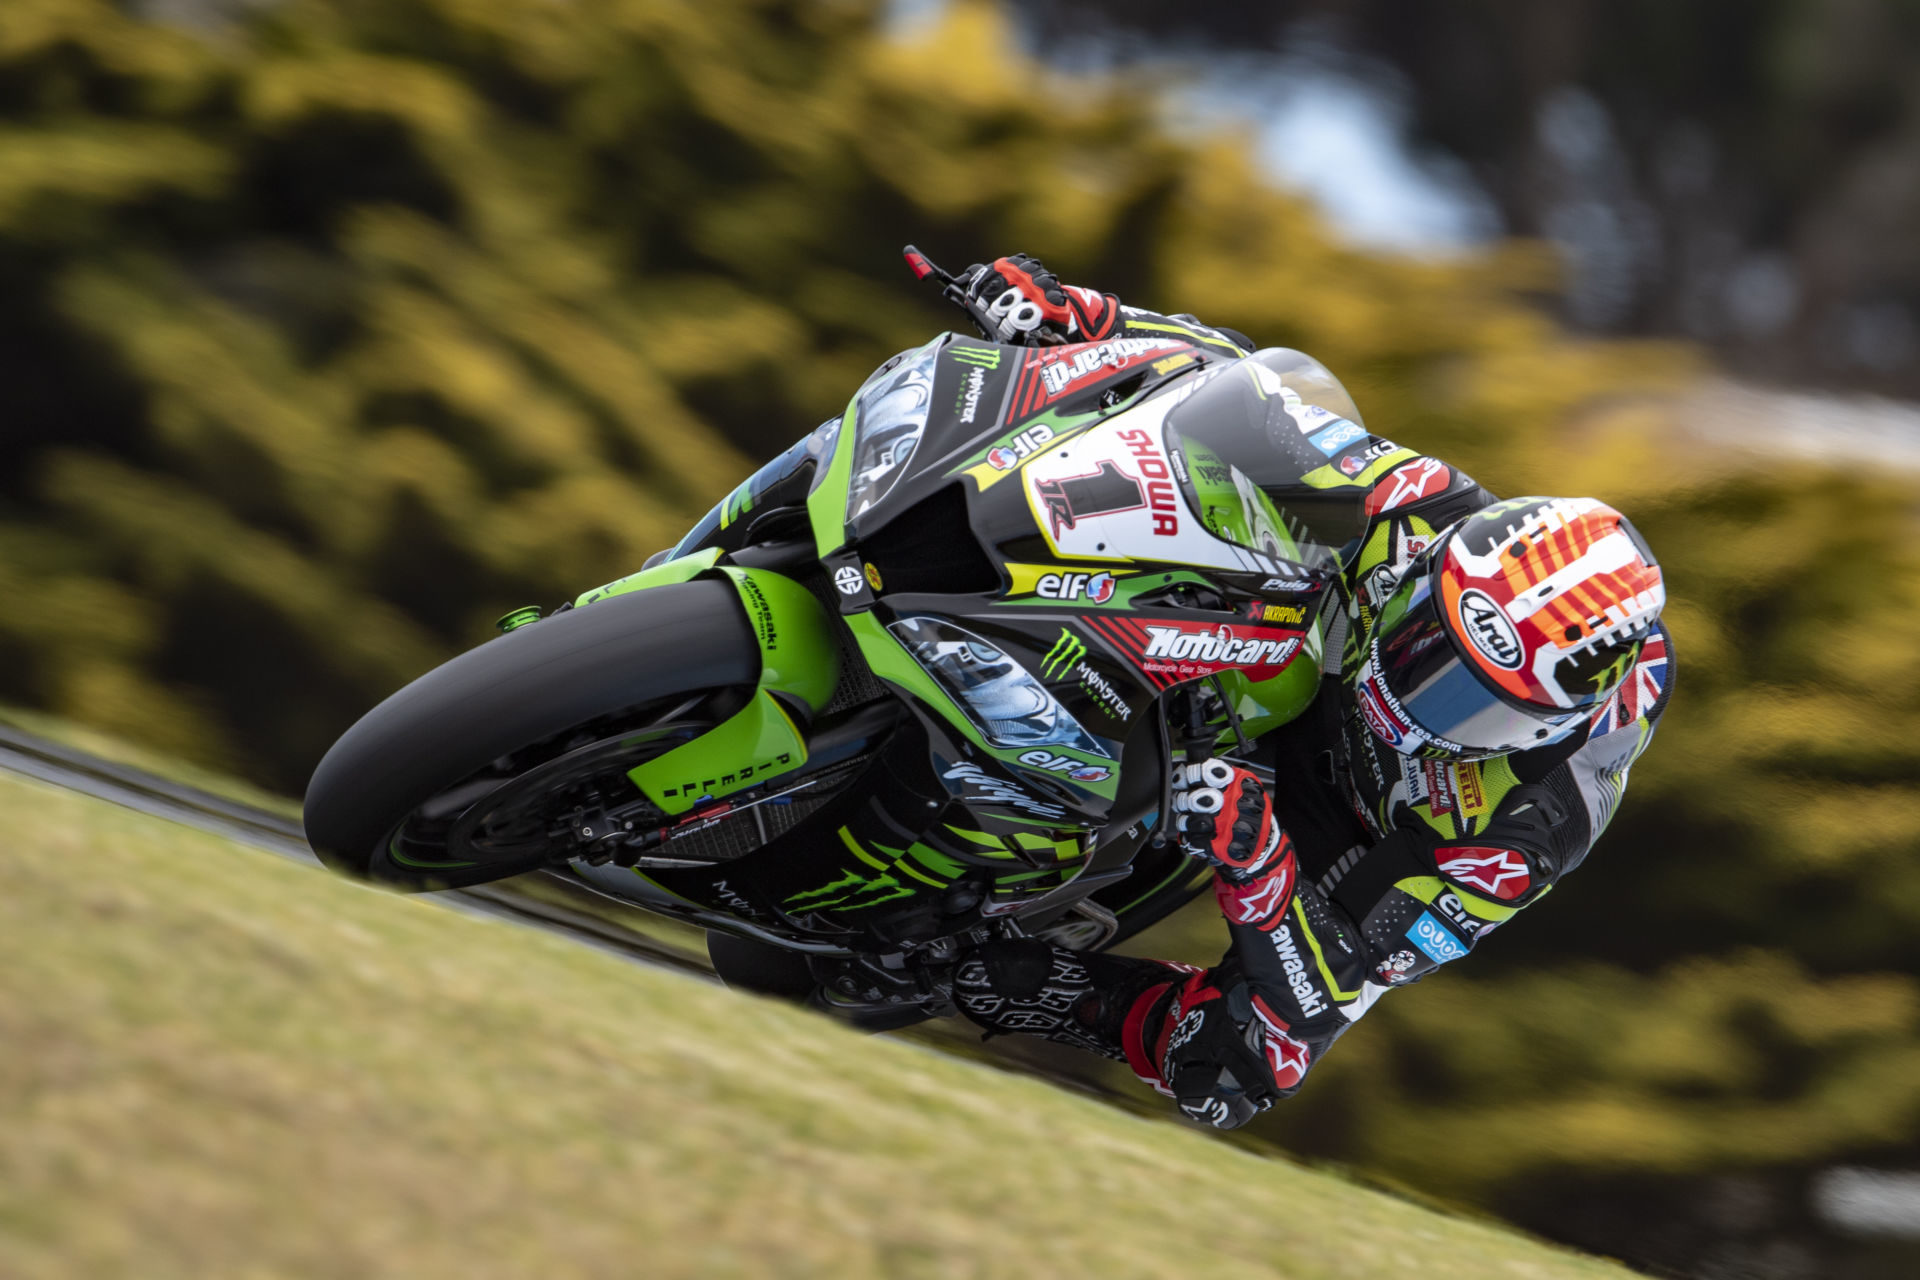 Defending Superbike World Champion Jonathan Rea (1) in action at Phillip Island in 2019. Photo courtesy of Kawasaki.